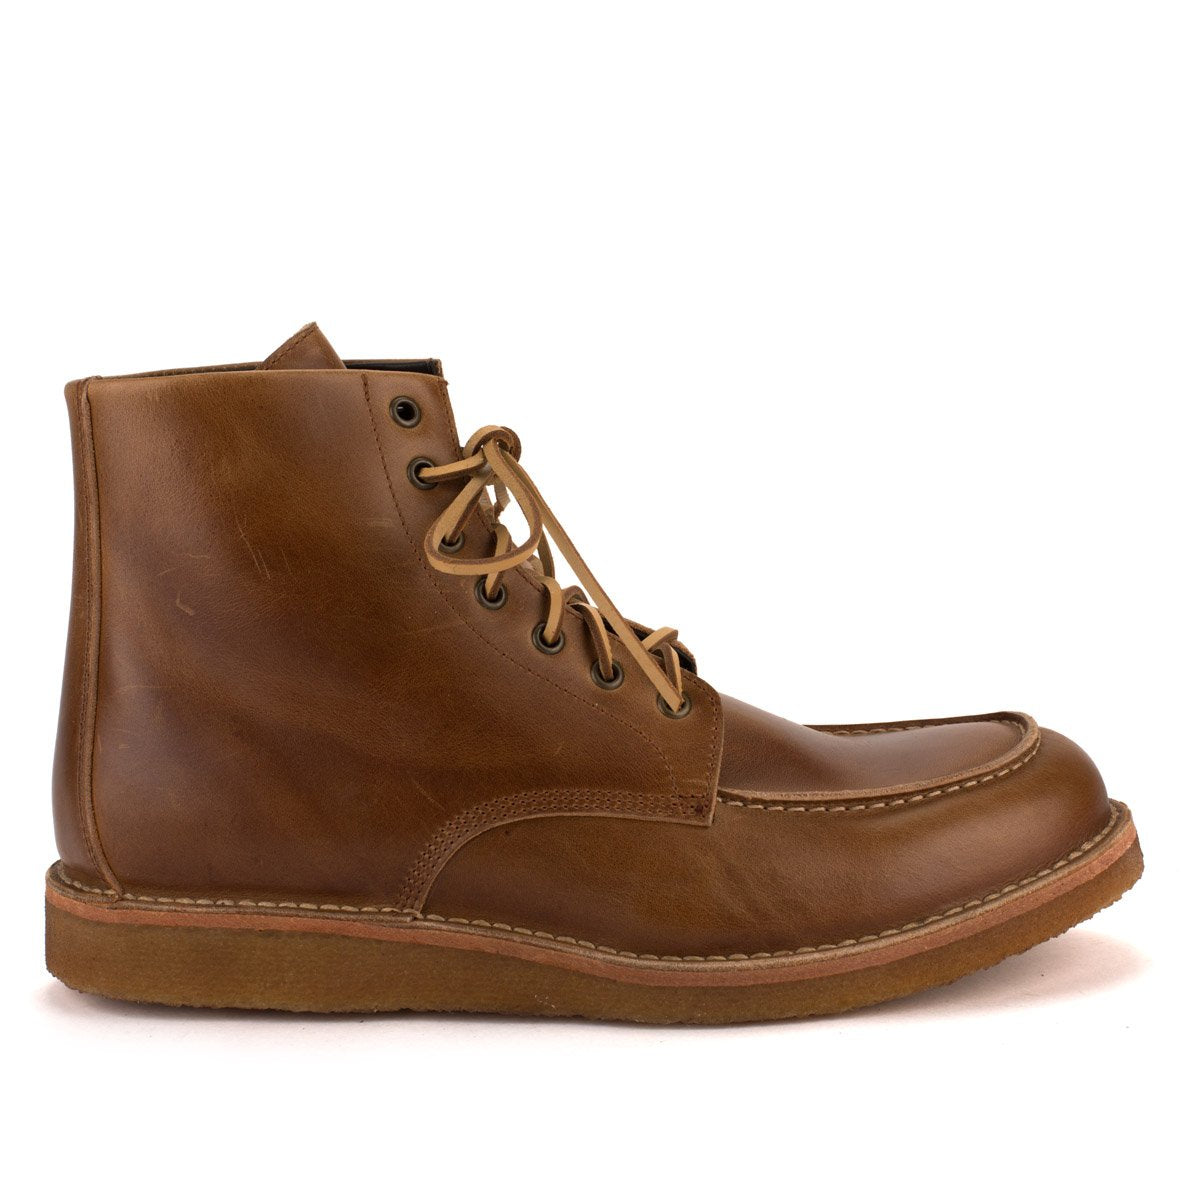 MR BRYAN ANKLE BOOTS – Caramel